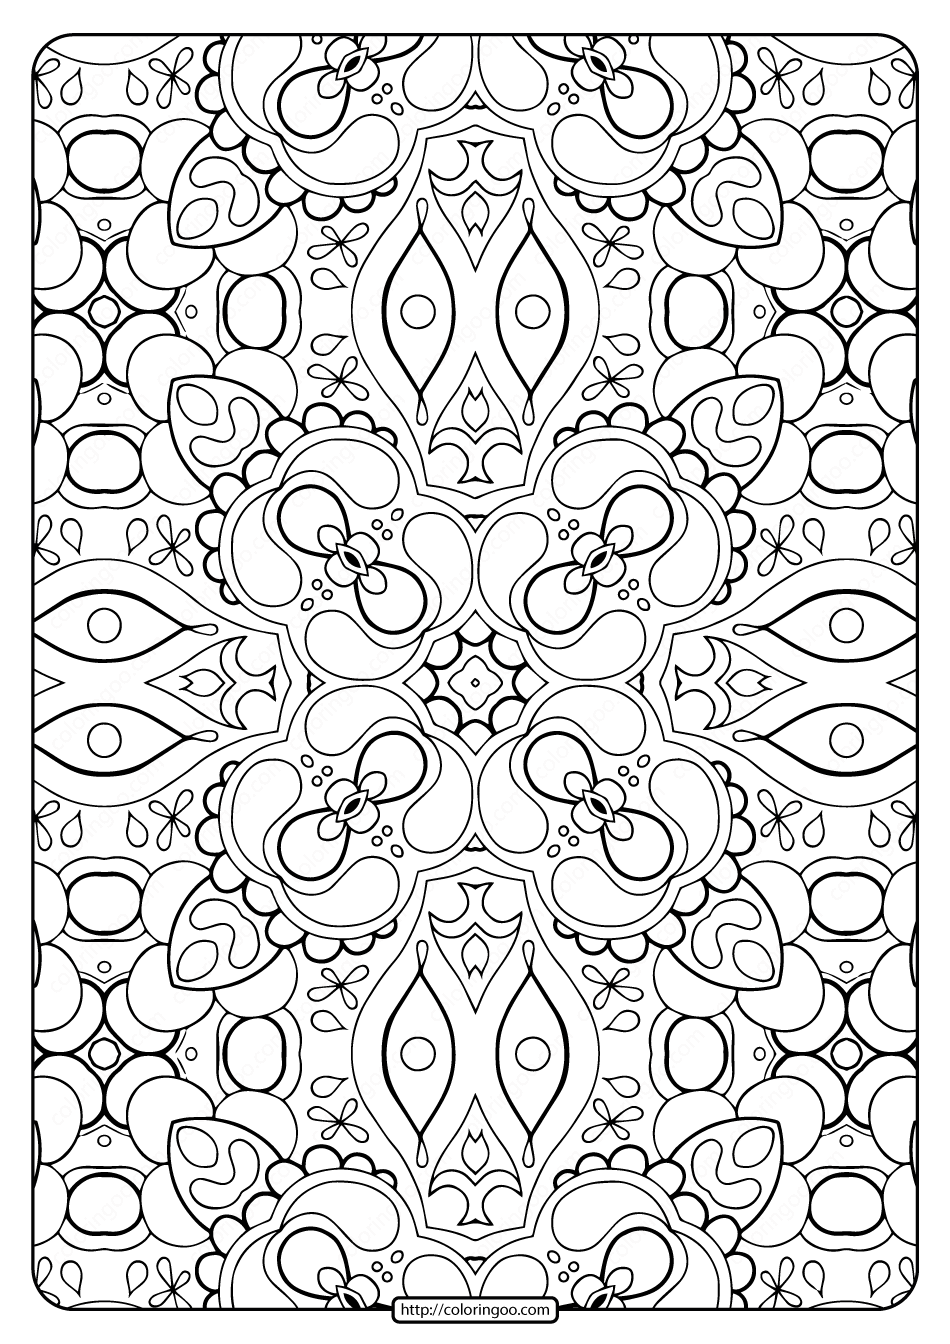 pattern coloring pages for adults printable abstract pattern adult coloring pages 01 adults pattern for pages coloring